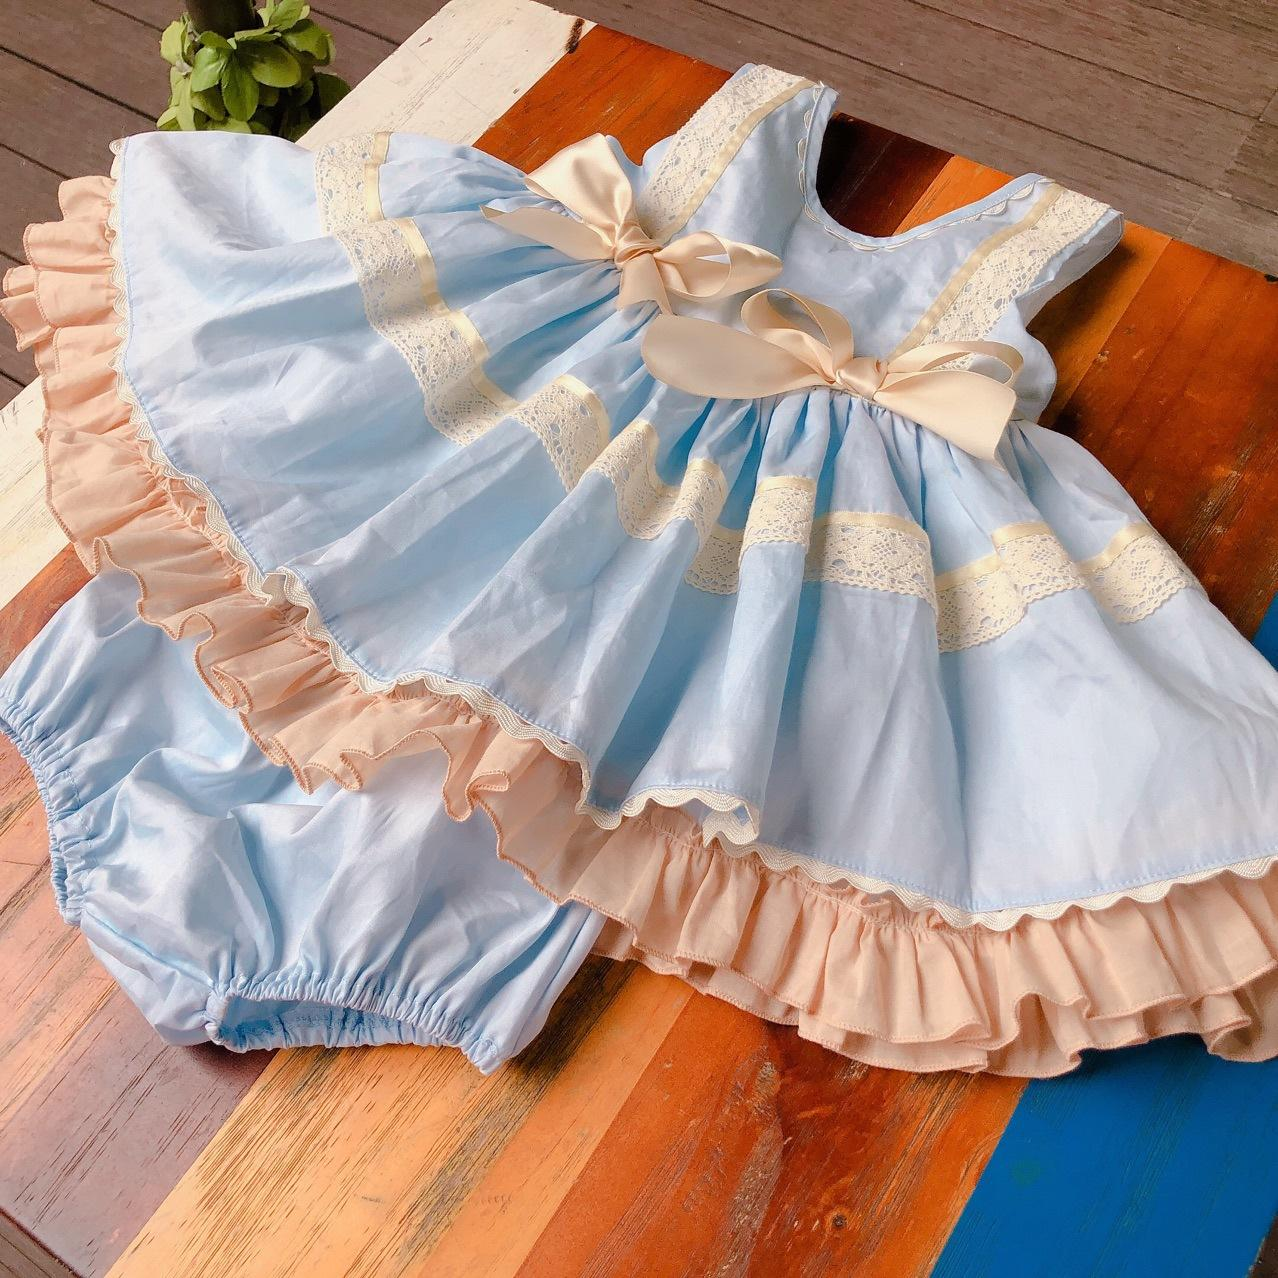 007260b39 2019 Baby Girl Designer Clothing Dress Spain Style Boutique Blue Lace Bow  Design Girl Dress Summer Girl Clothes Dress From Elapp, $18.1   DHgate.Com